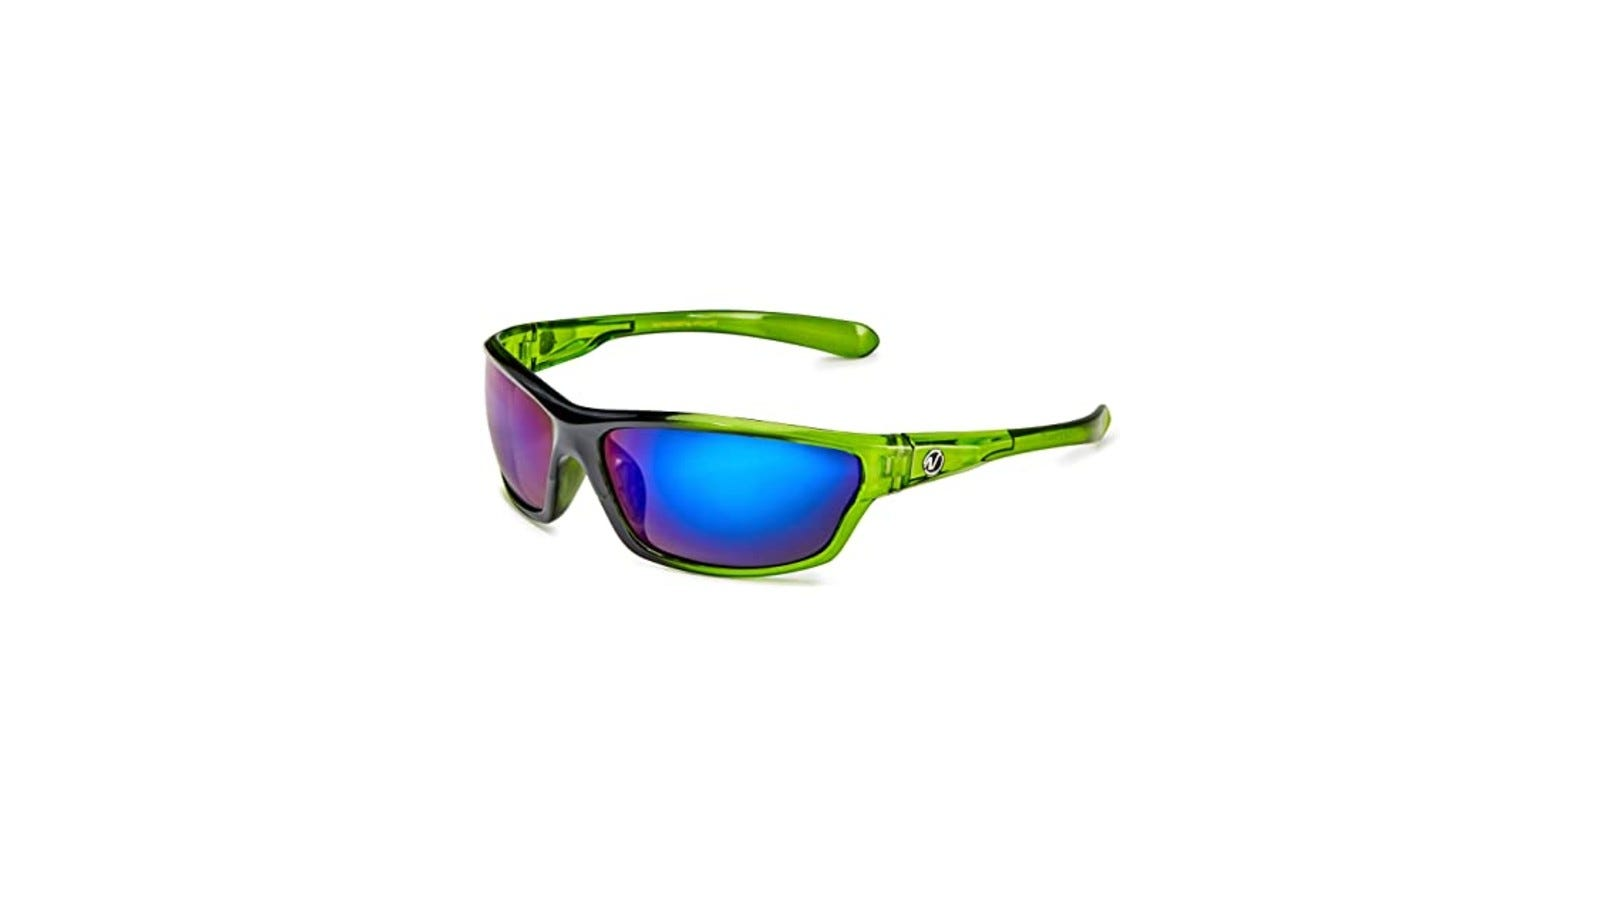 These sports sunglasses offer many unique color schemes